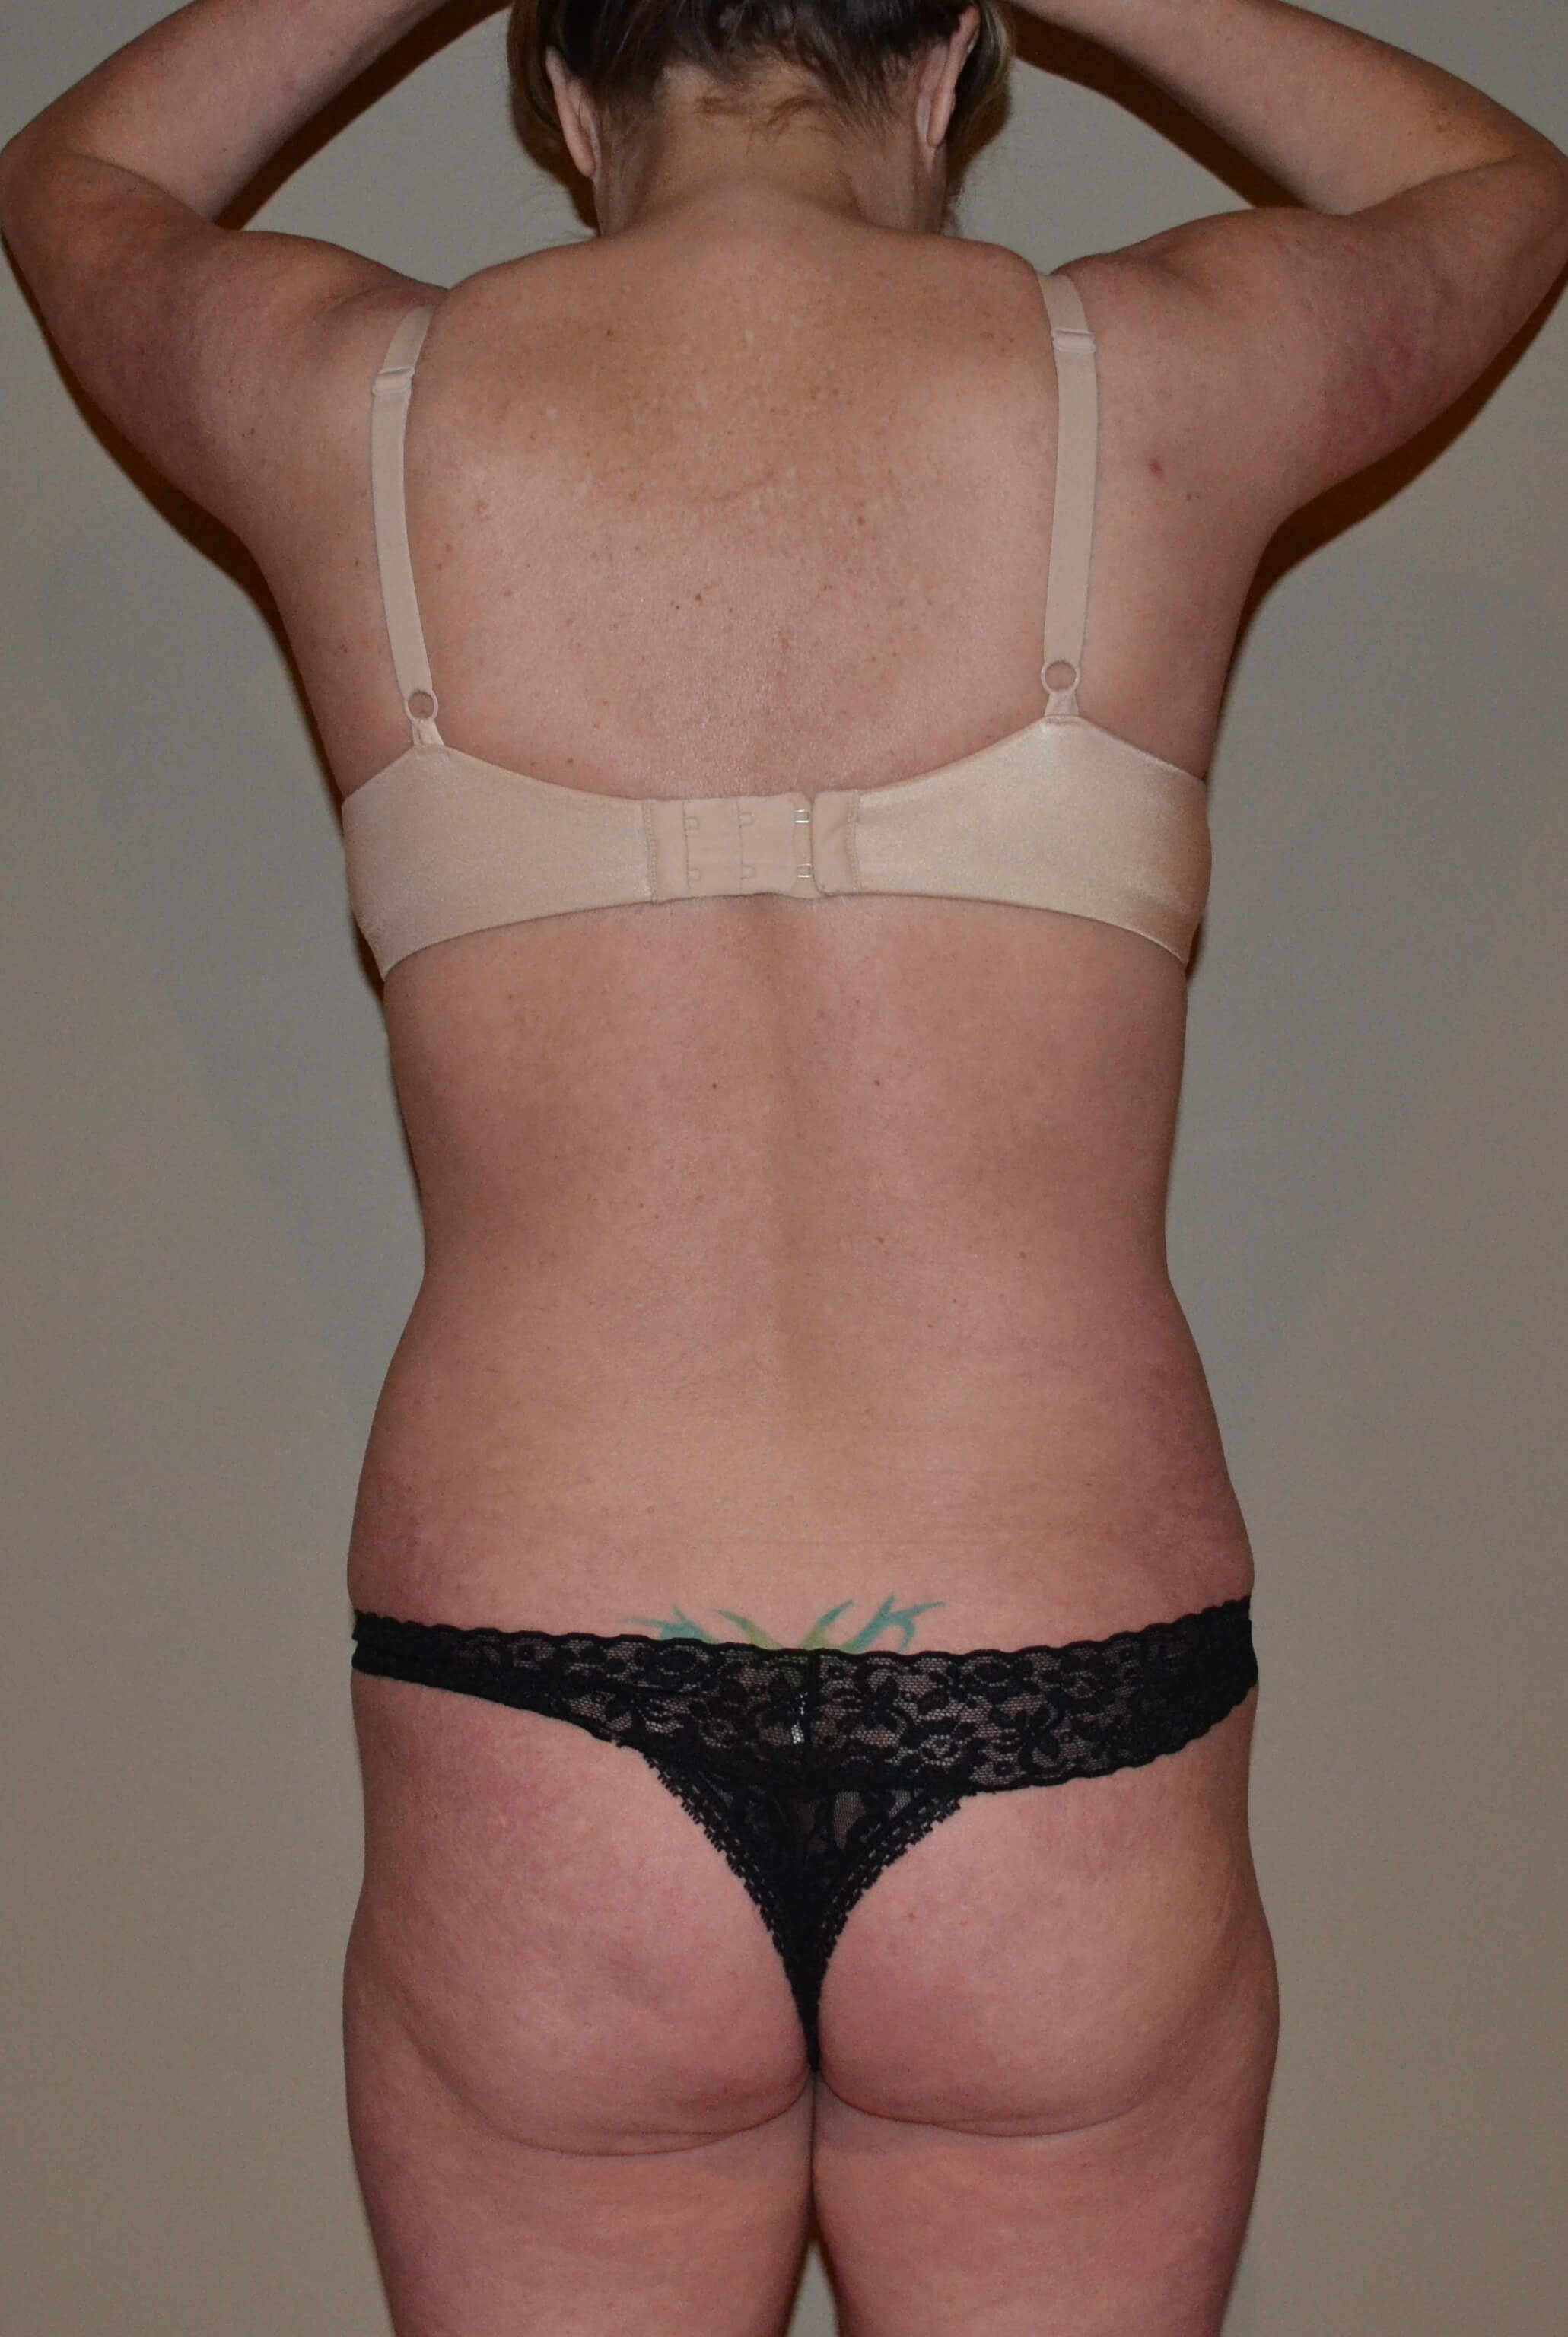 VASER Hi Def Lipo Before, back view